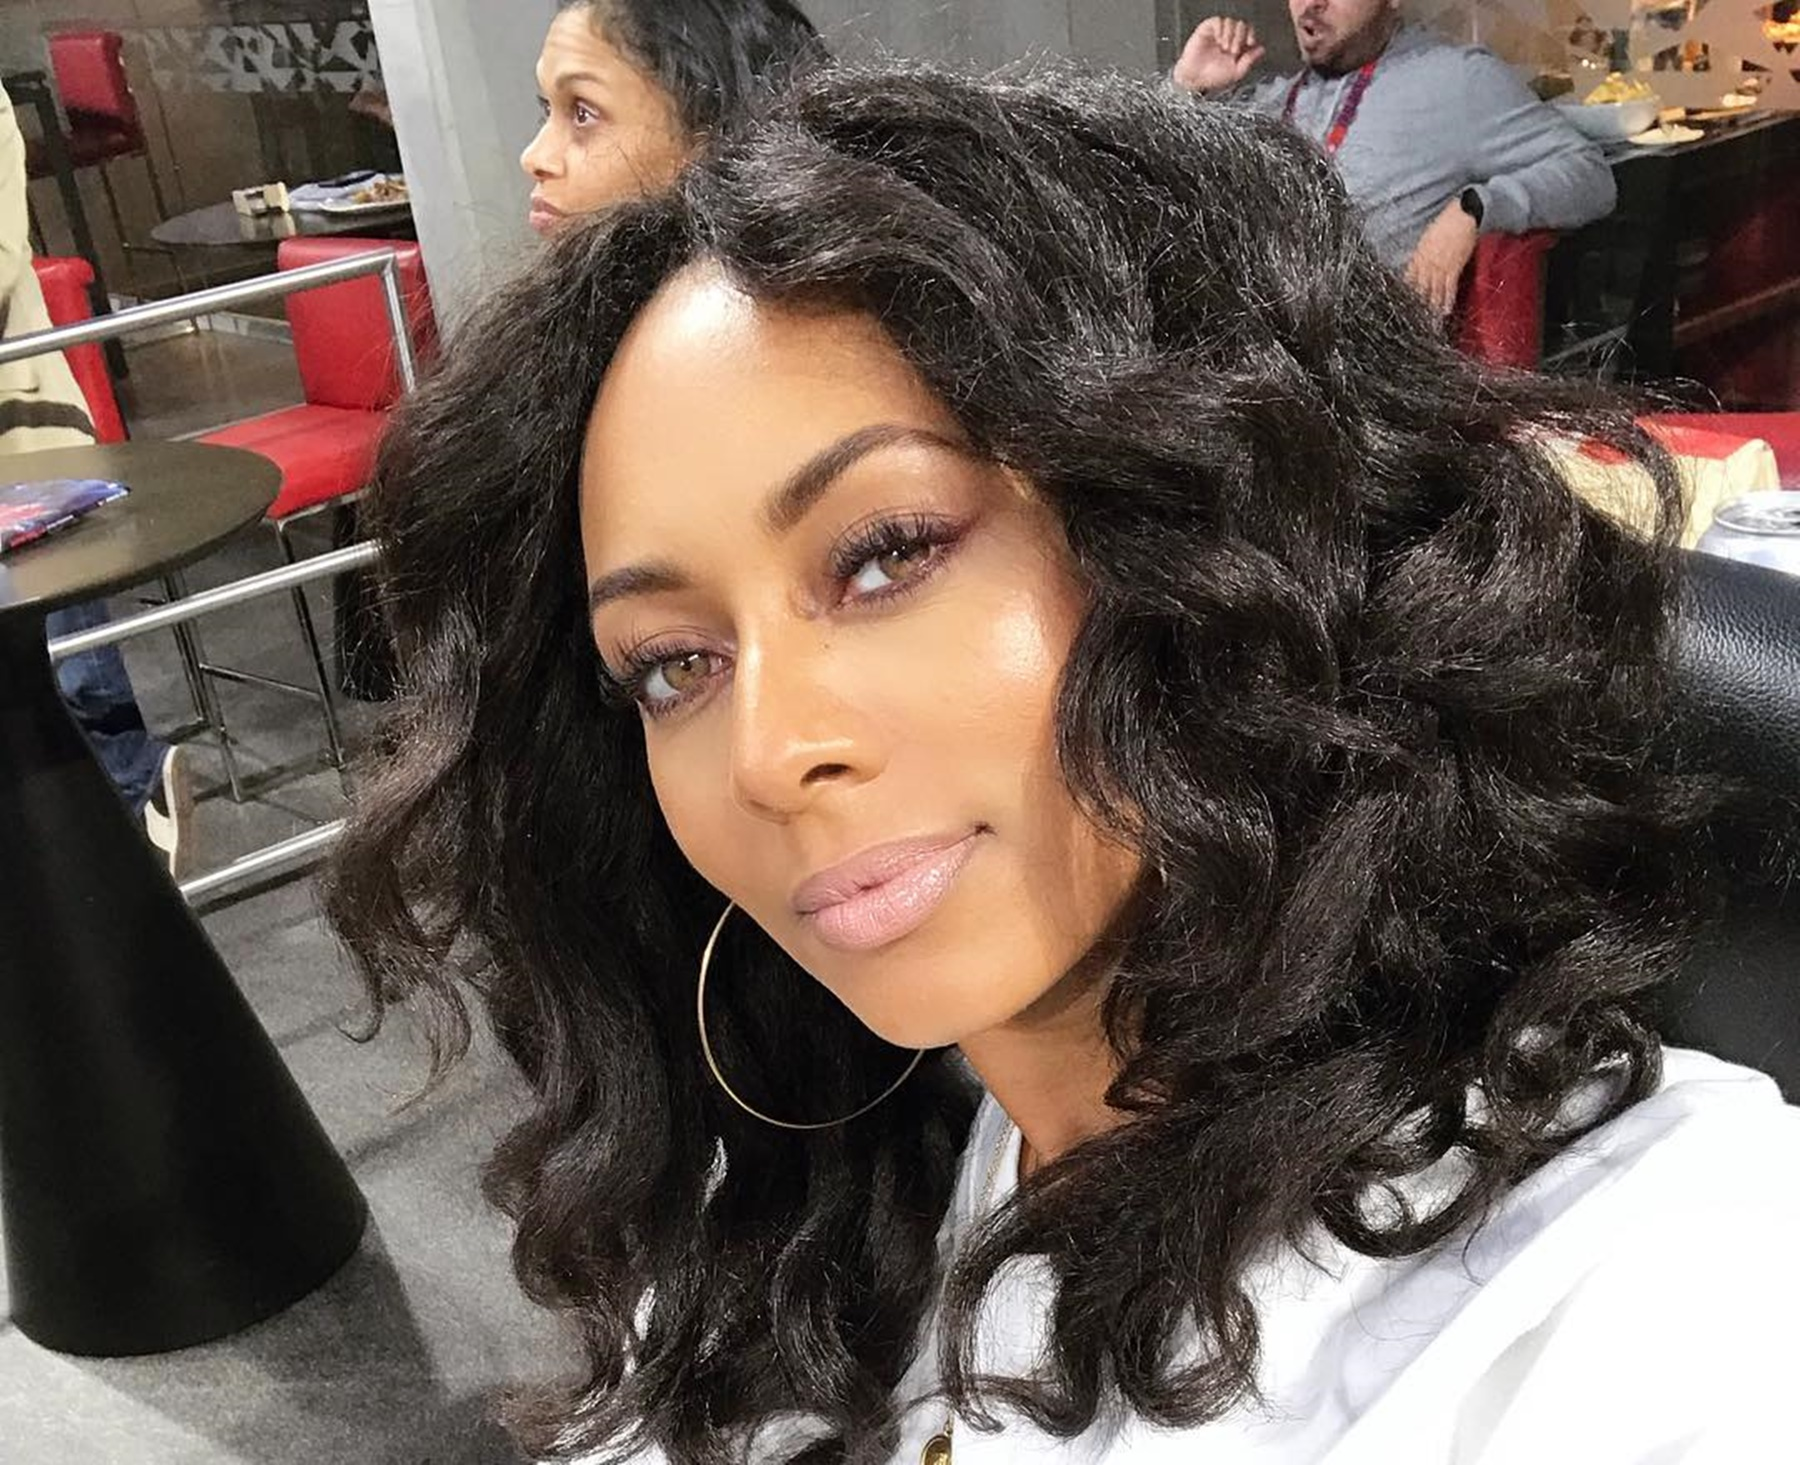 keri-hilson-goes-make-up-free-in-latest-stunning-pictures-supporters-believe-the-singer-is-gorgeous-and-will-have-no-trouble-reconquering-the-music-world-ten-years-later